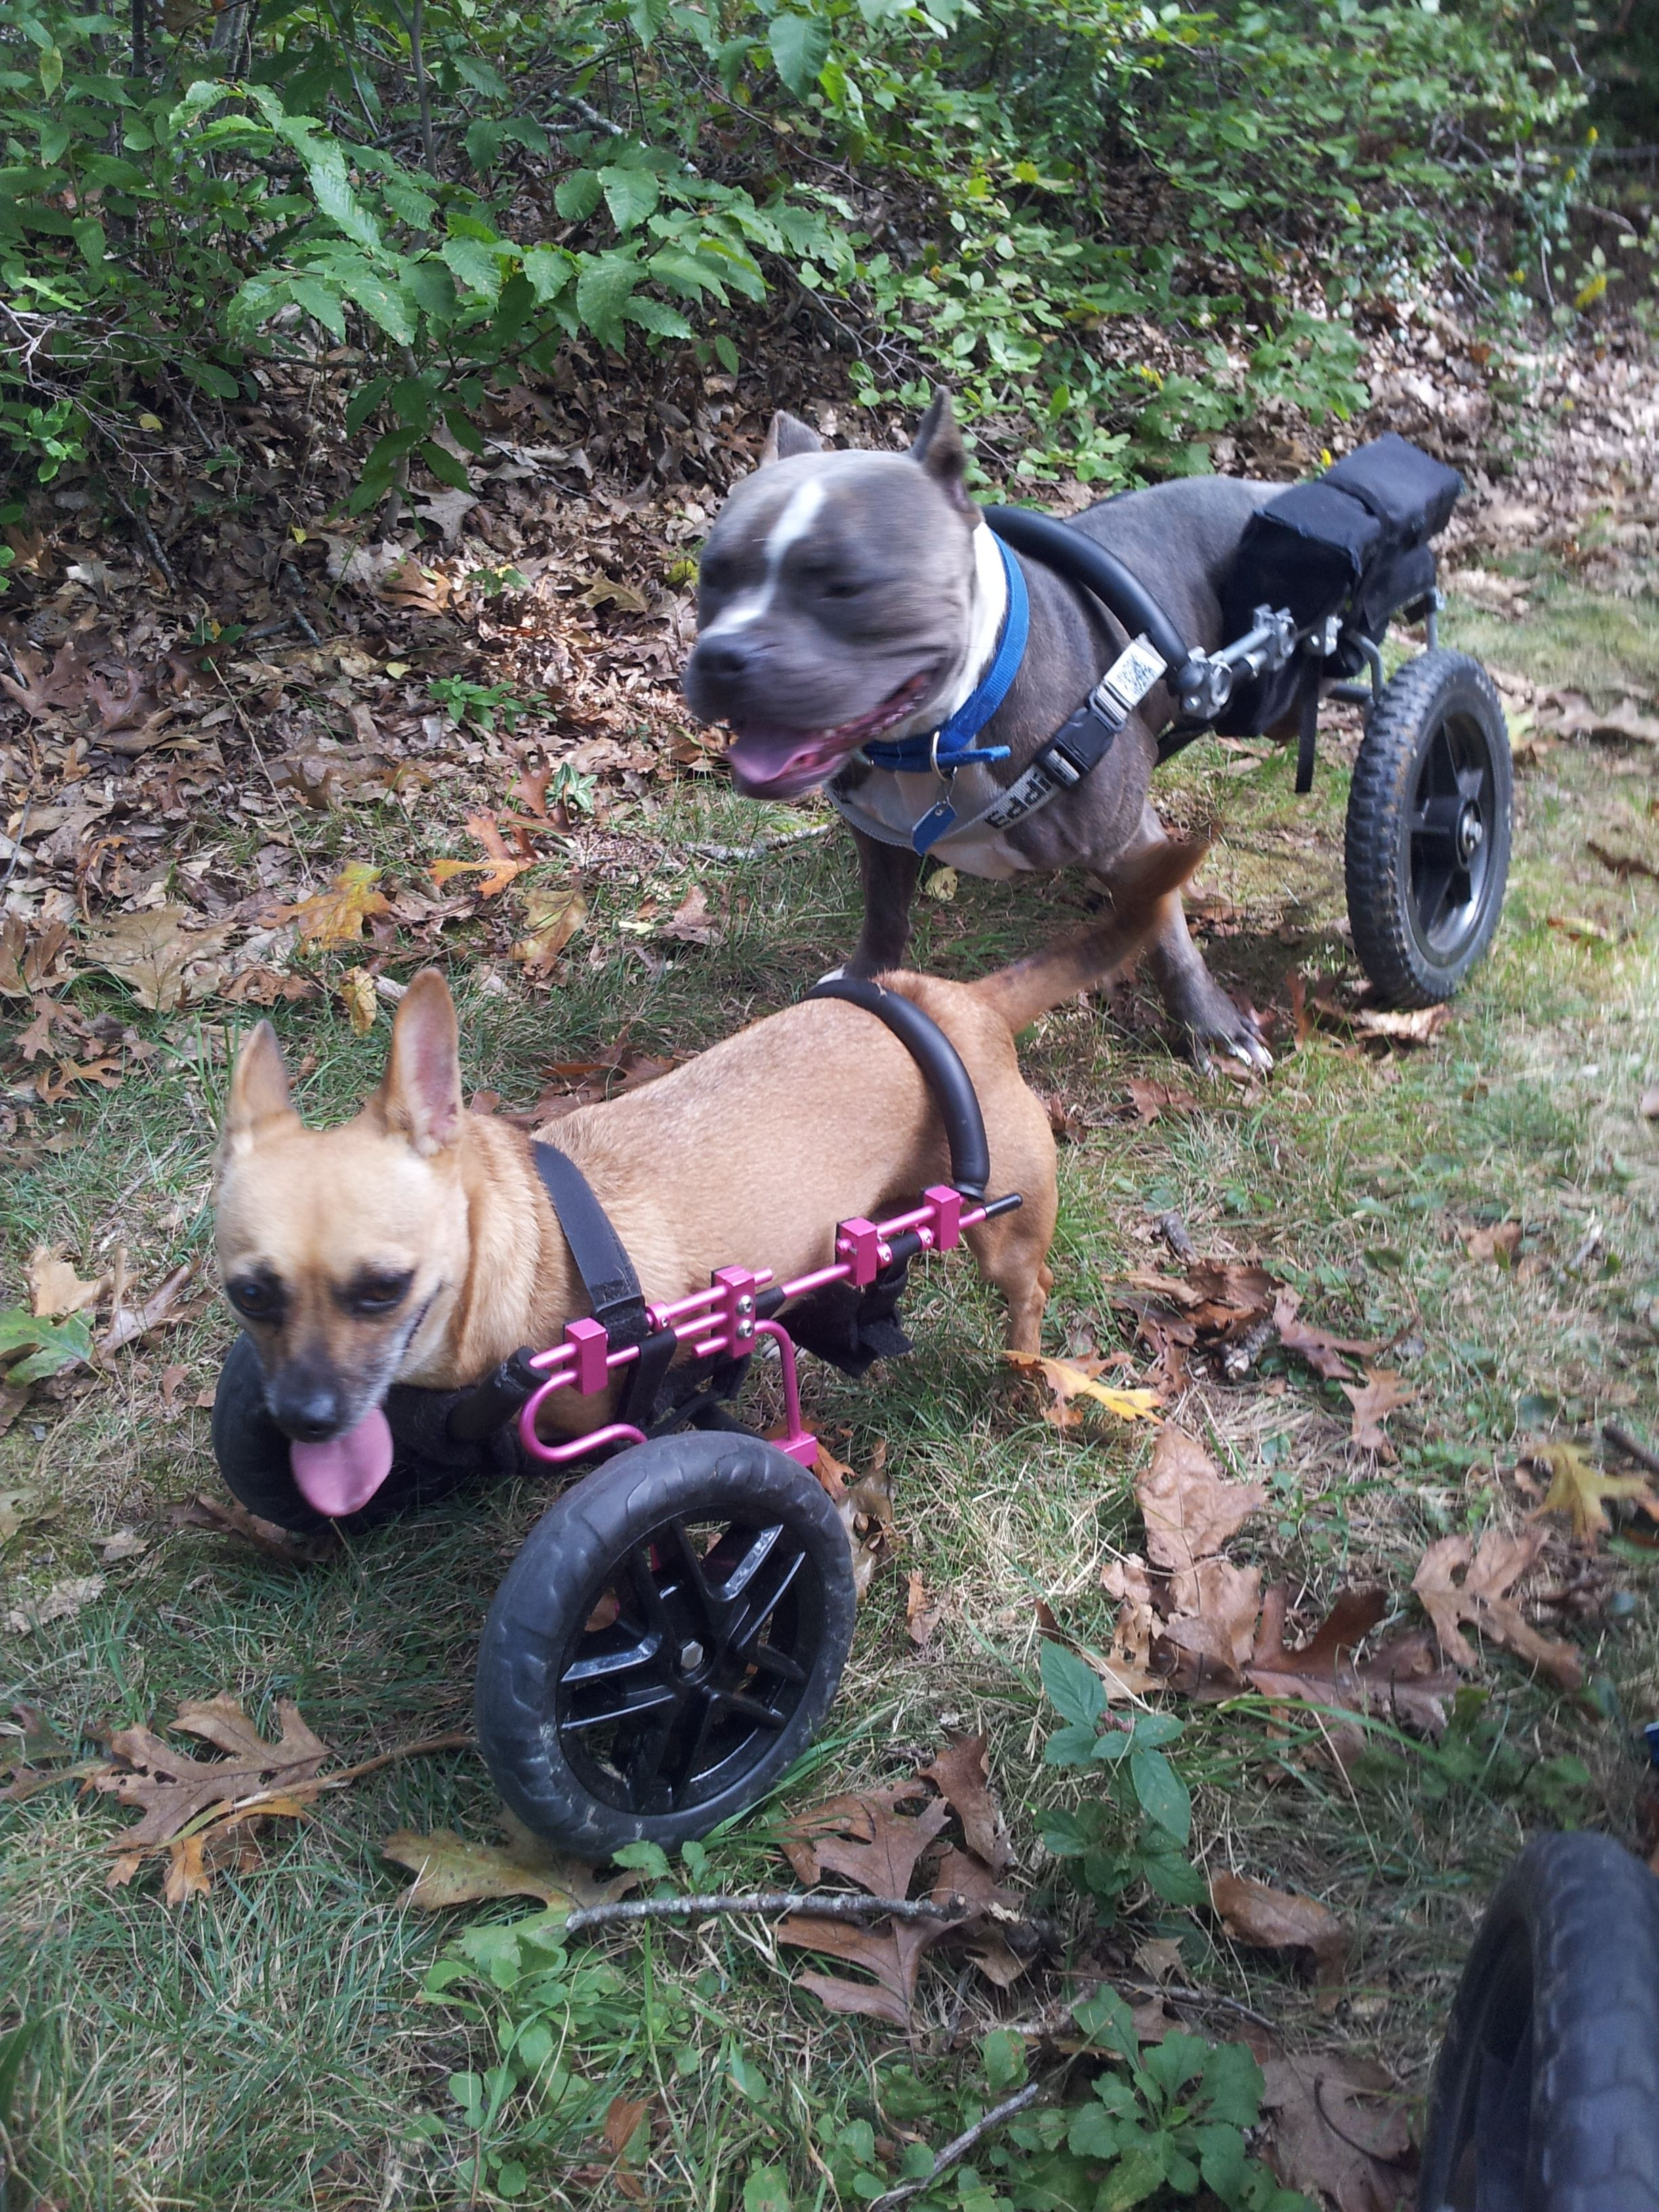 Wheelchair Dog White Folding Chairs For Sale Willa And Beau Hiking In Their Wheelchairs R Andd Team